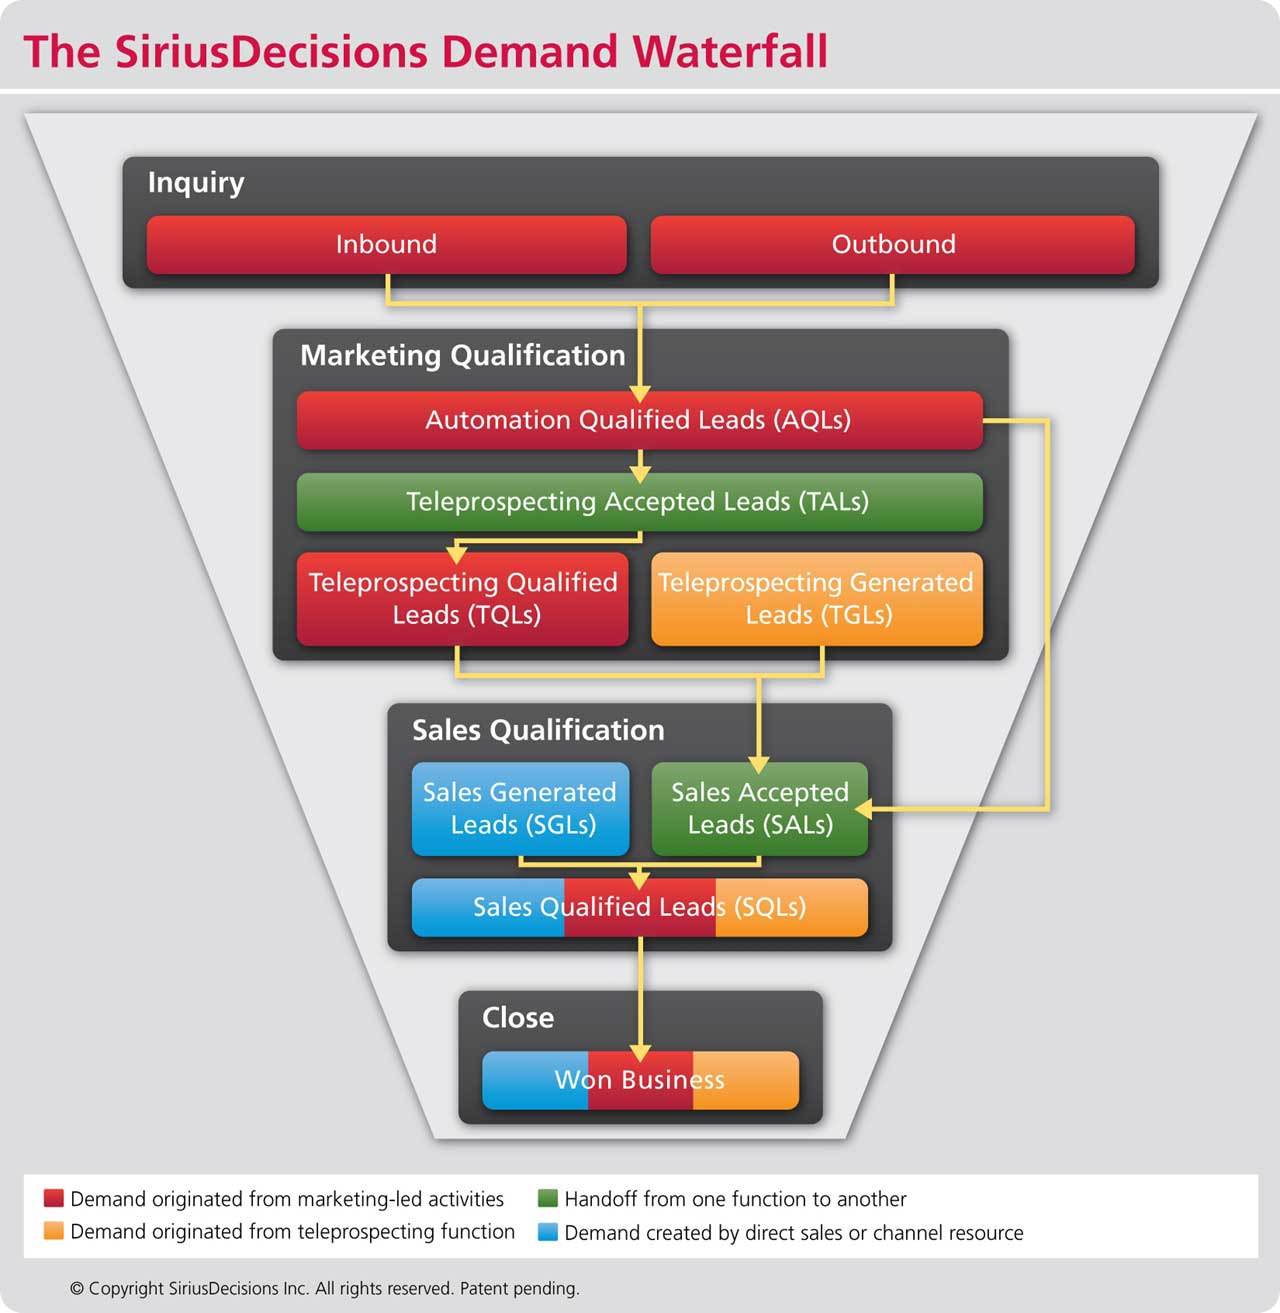 Demand Waterfall SiriusDecisions